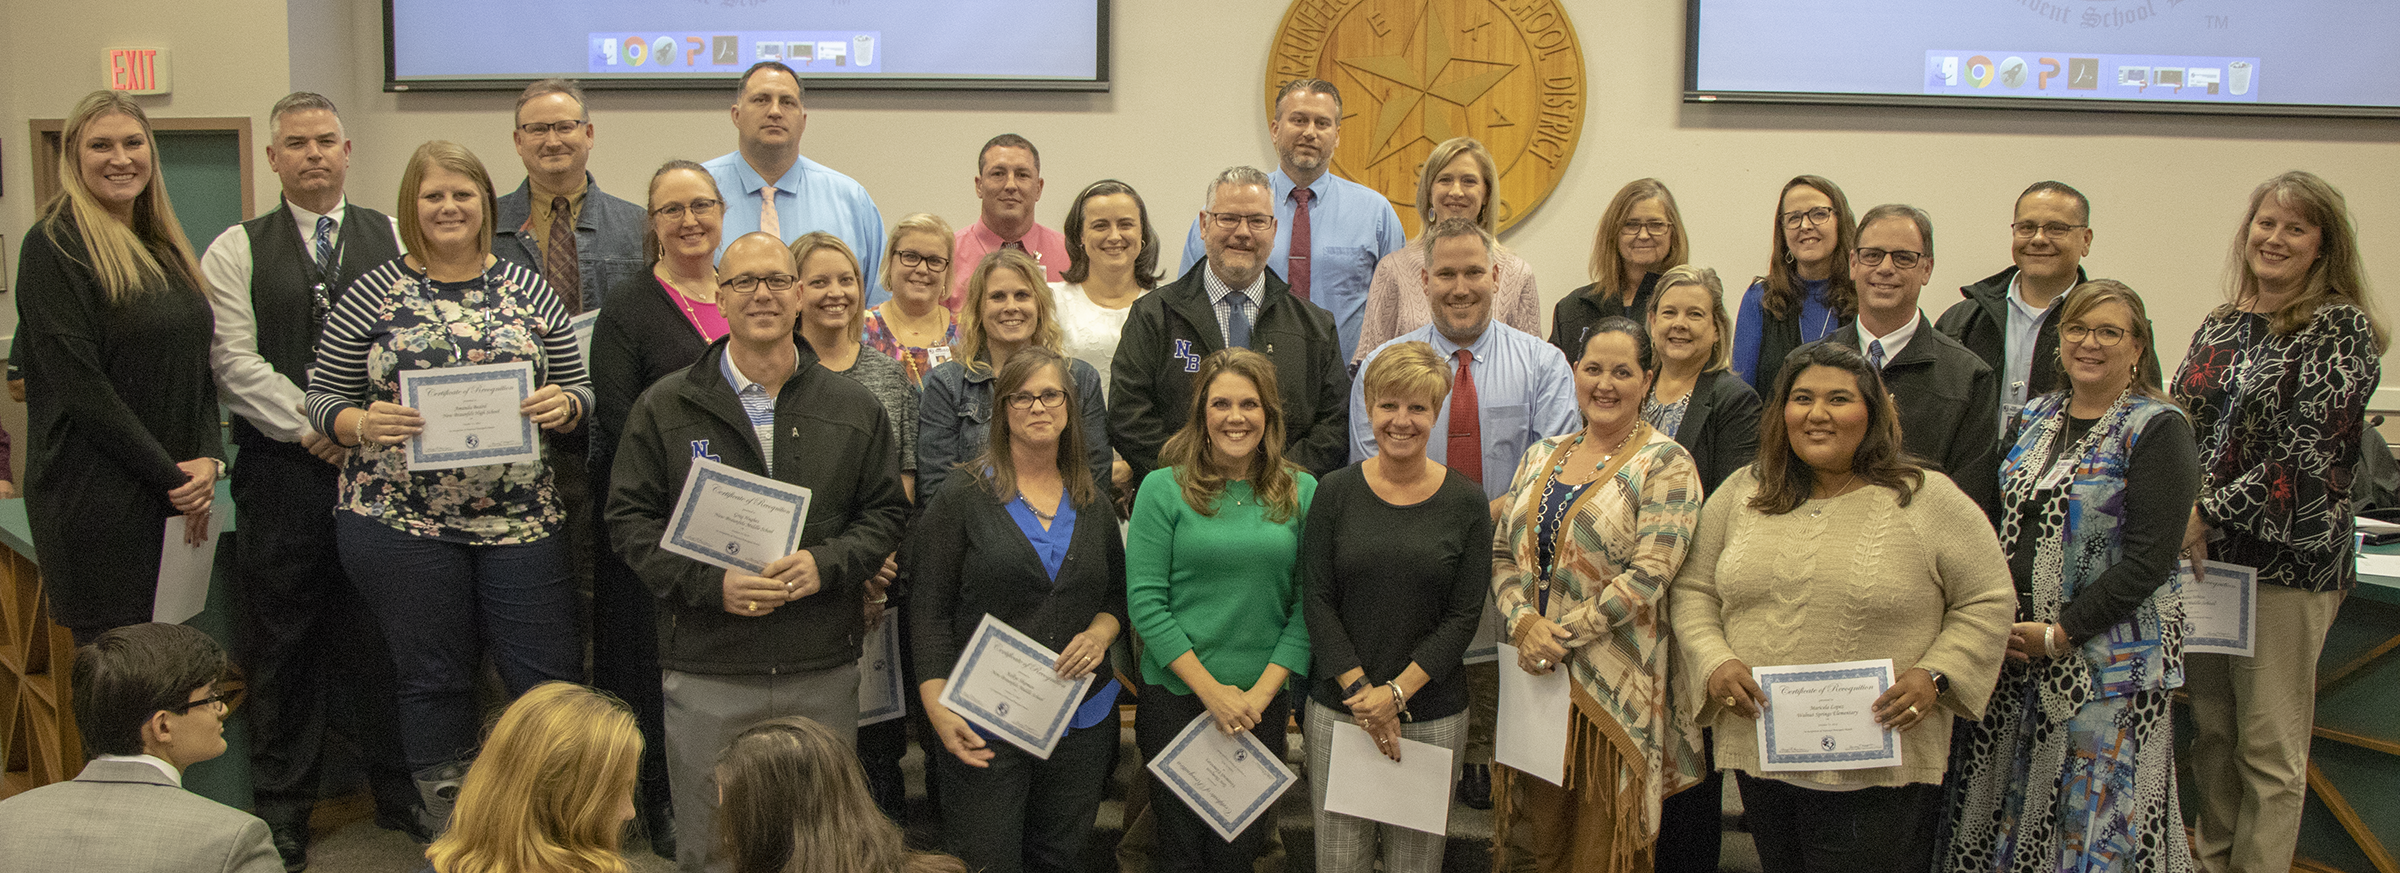 The NBISD Board of Trustees honored all of NBISD principals and assistant principals at the Oct. 15 regular monthly meeting.